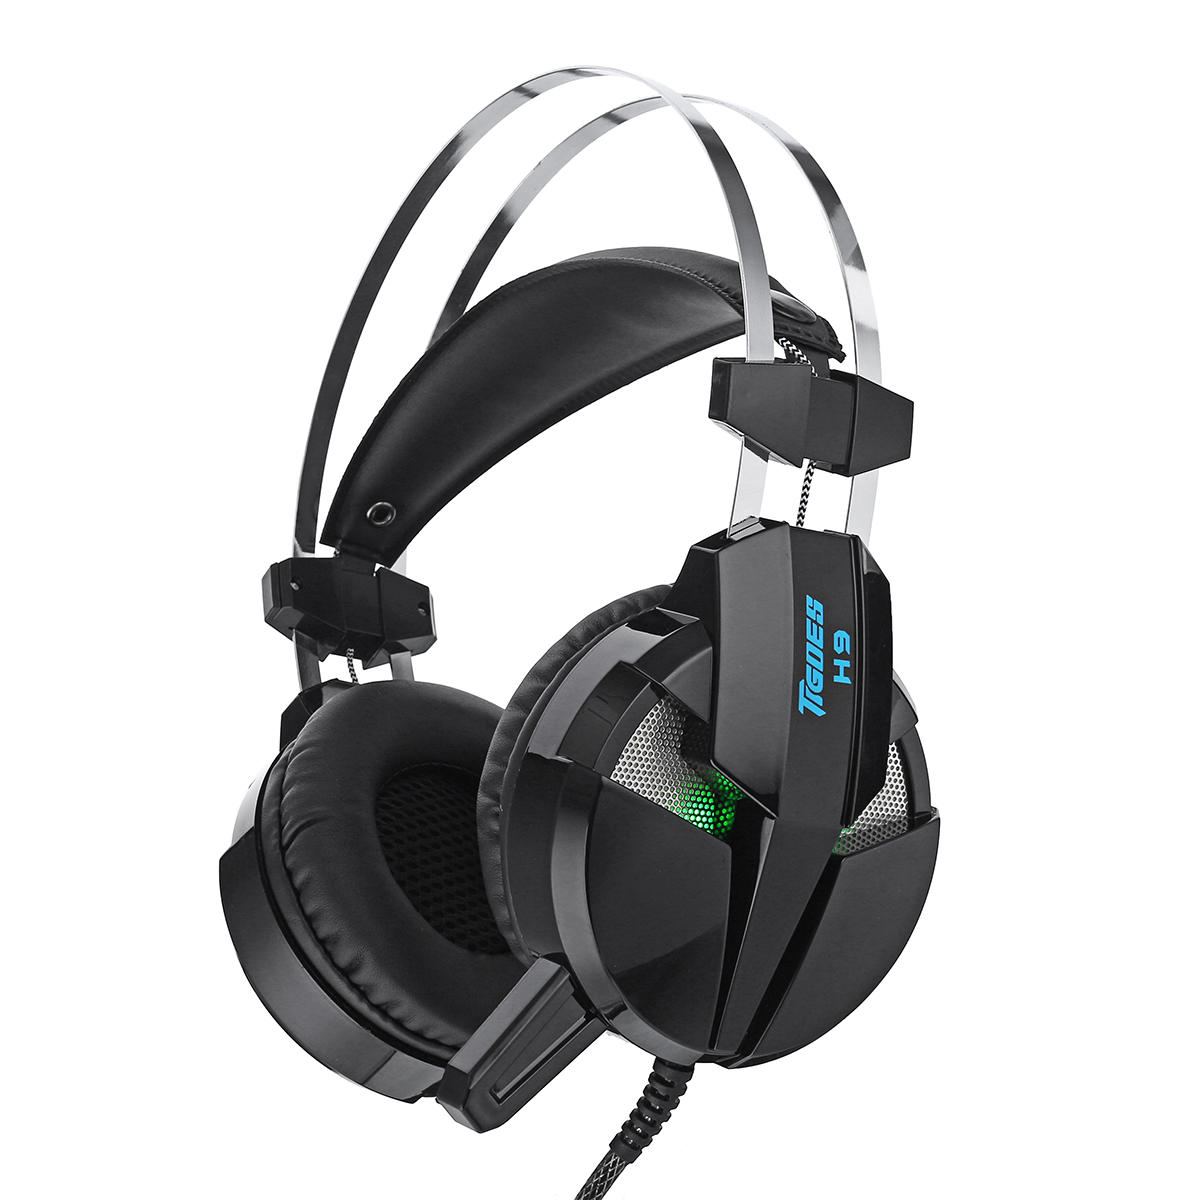 MISDE H9 Gaming Headphone Headset LED Light Stereo Noise Cancelling  Headphone with Mic